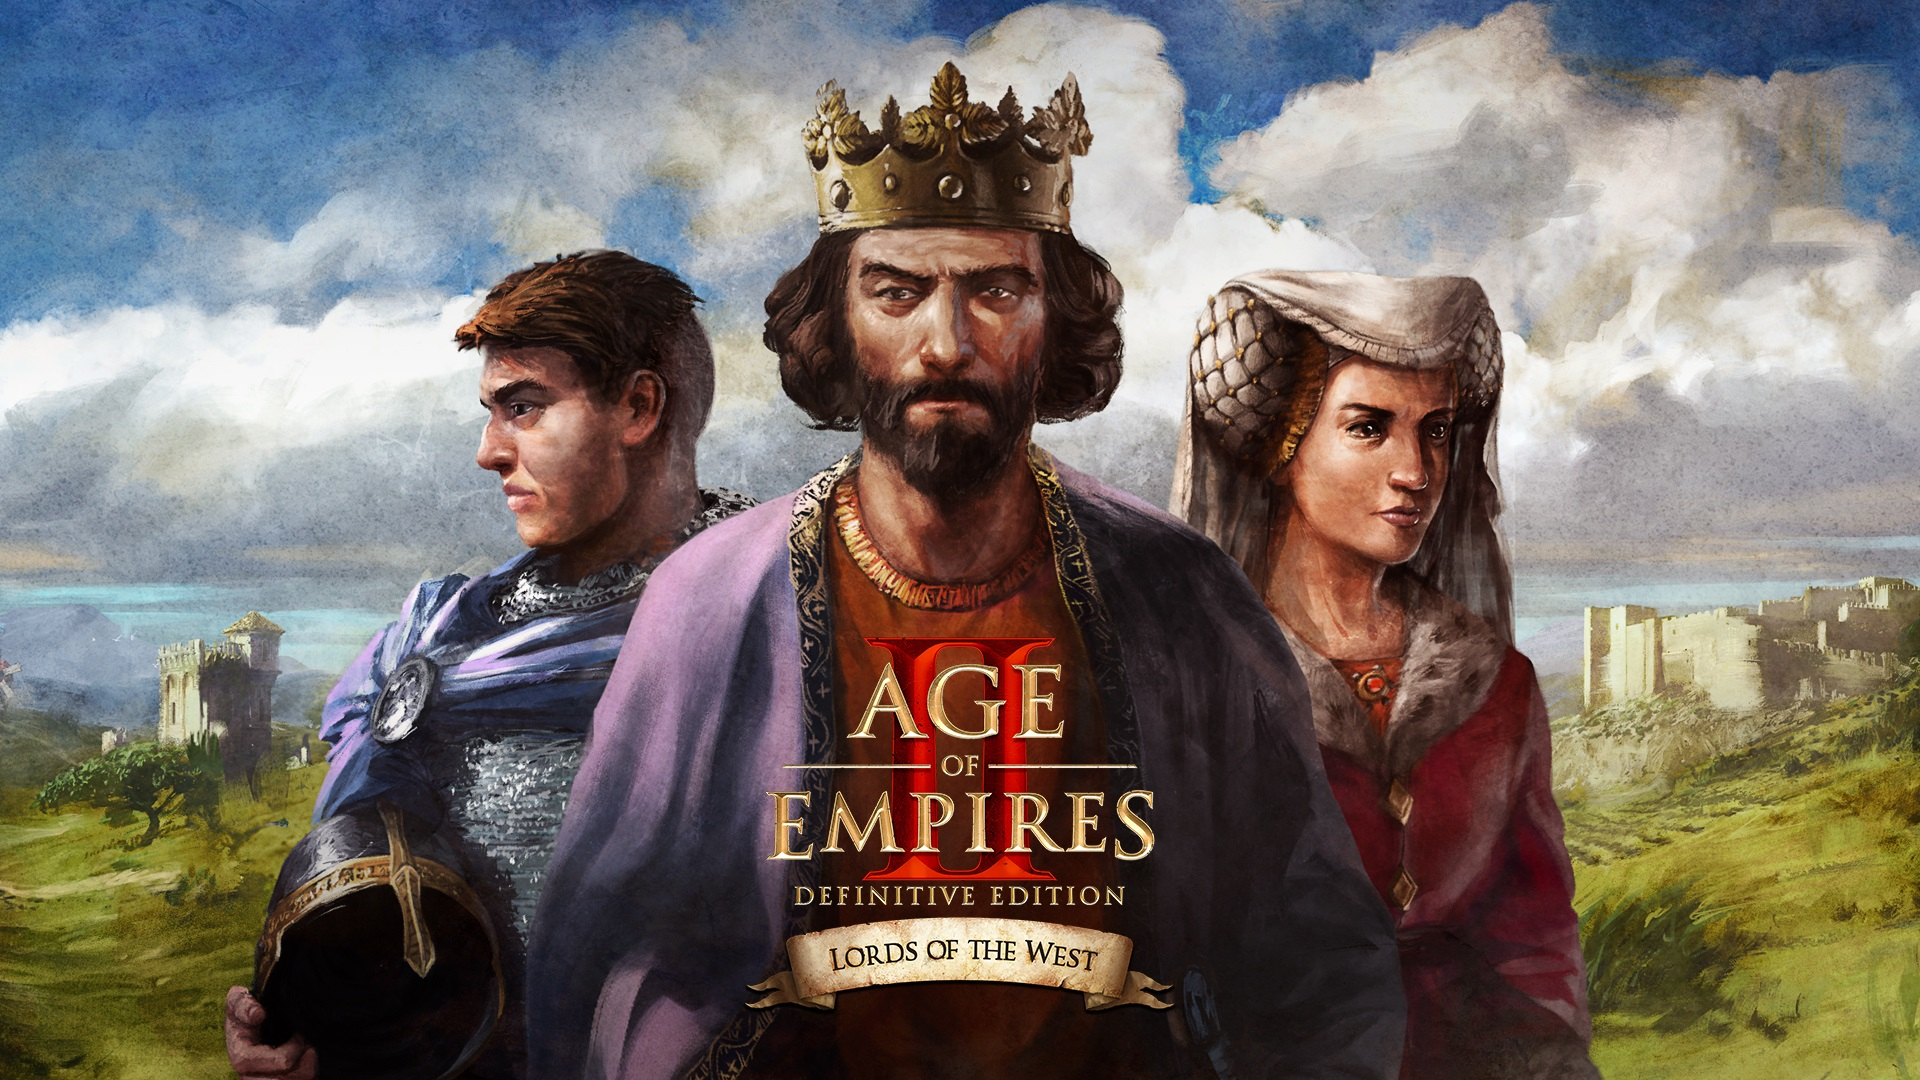 UNCATEGORIZEDAge of Empires IV